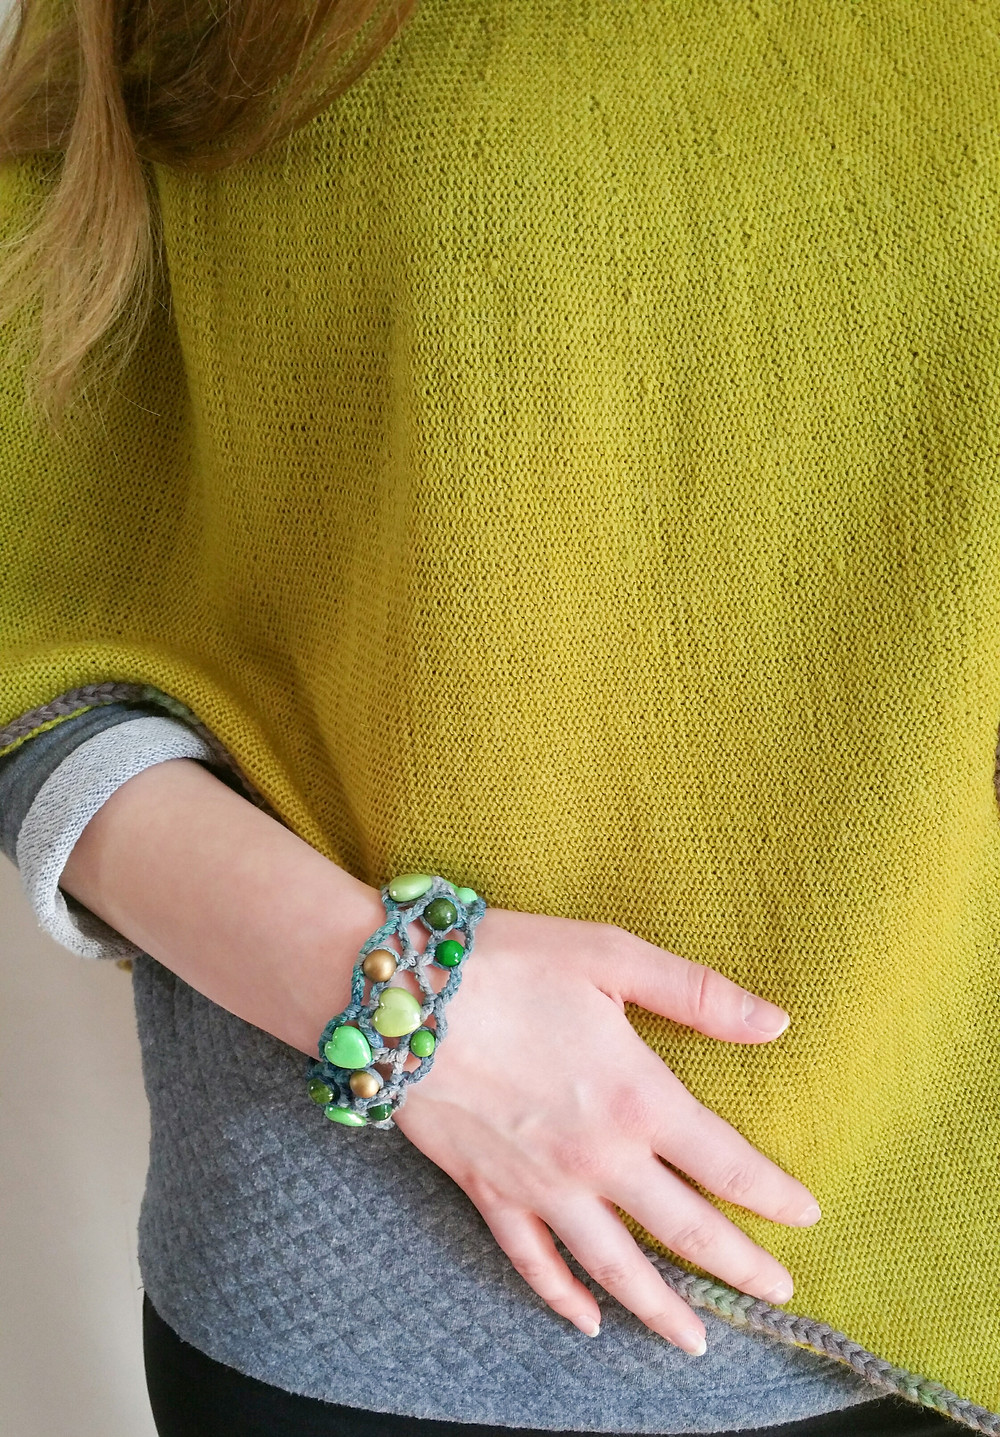 Crocheted green bracelet with knitted green Rune poncho.